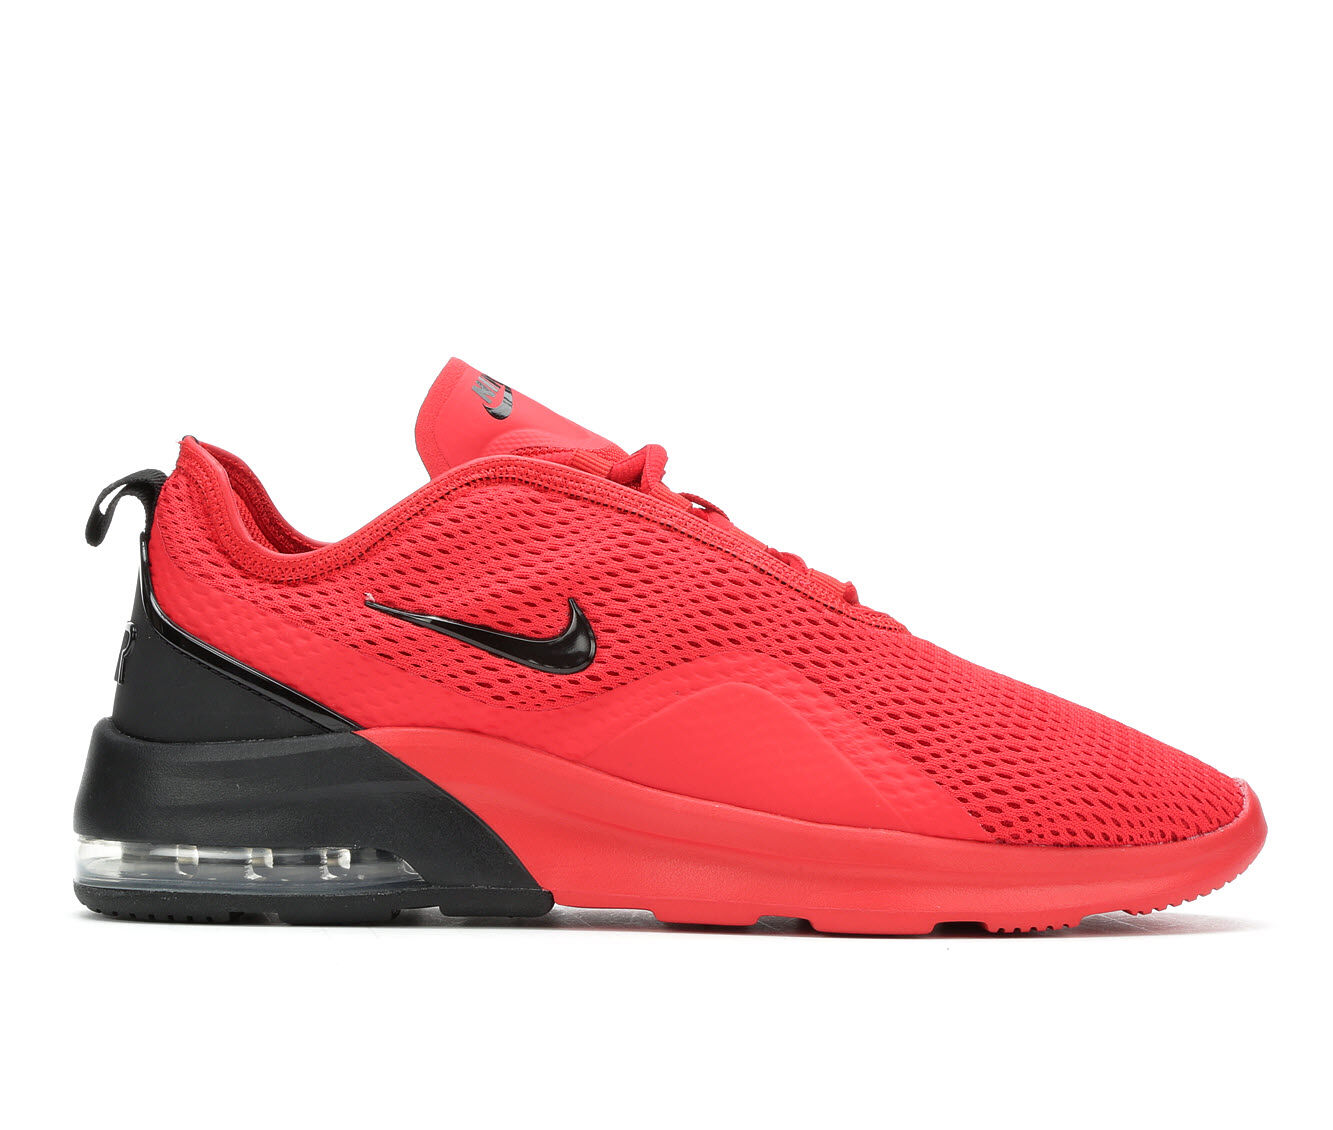 Men's Nike Air Max Motion 2 Sneakers Red/Blk/Wht 601